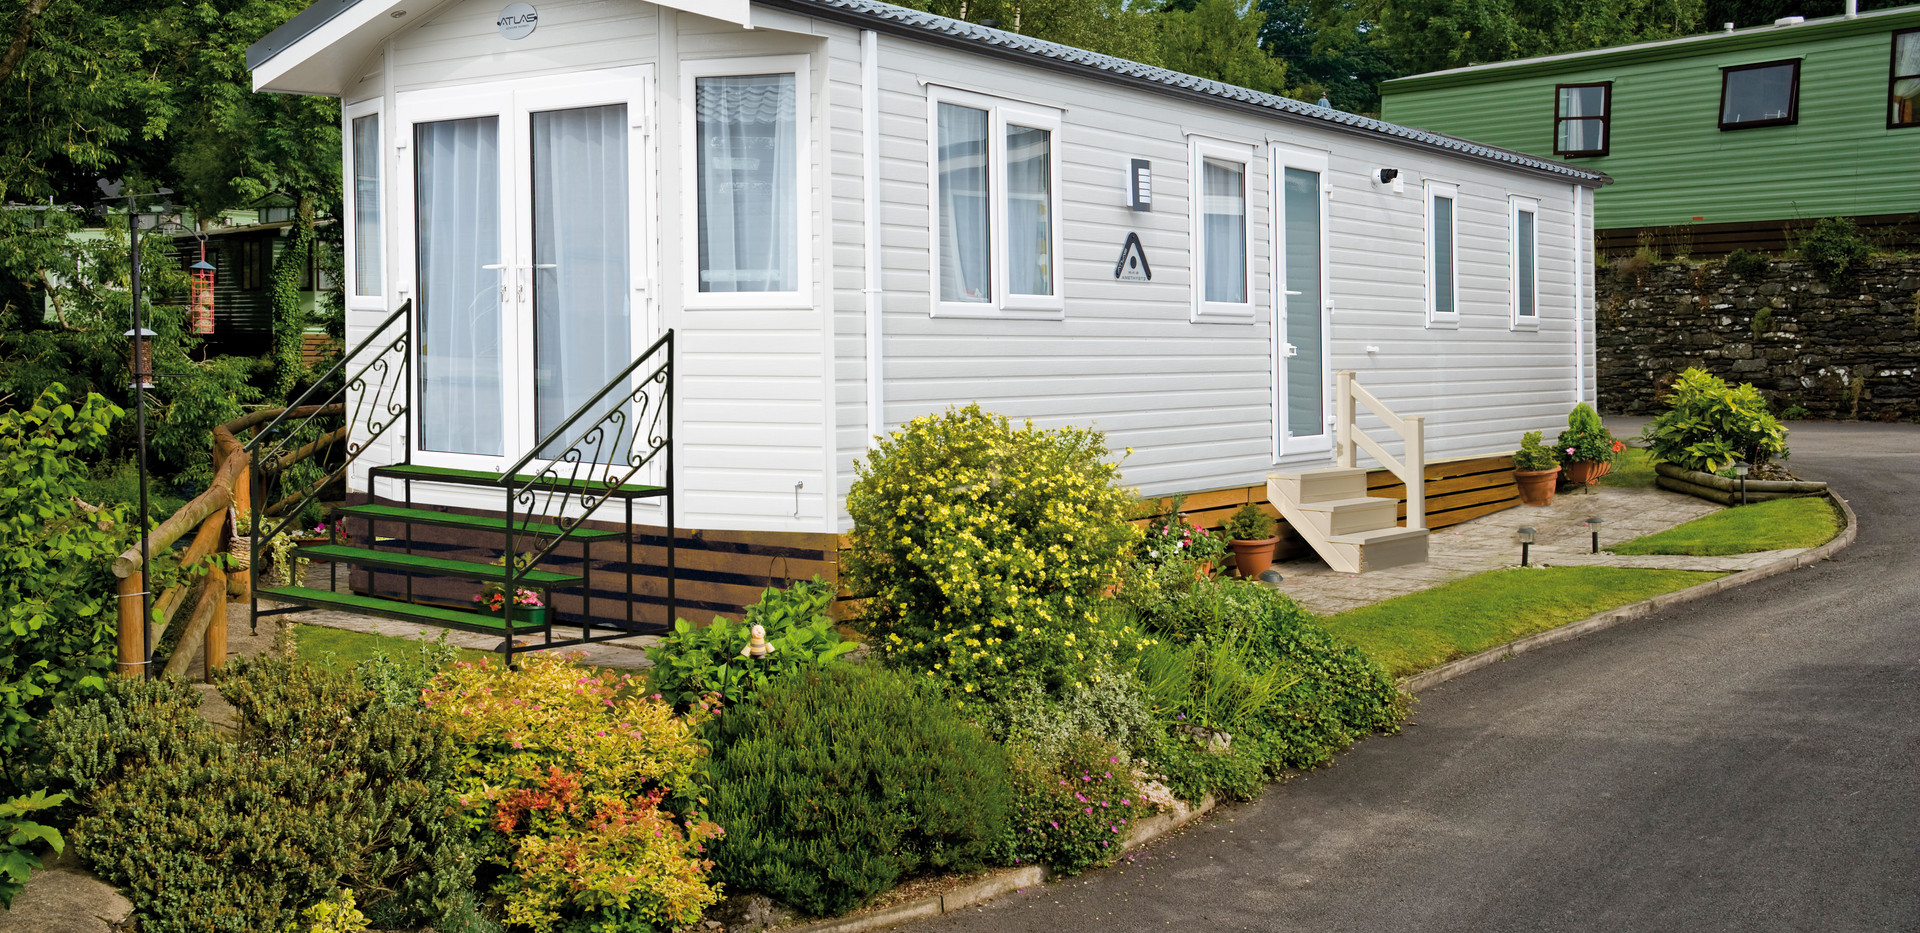 Amethyst Holiday Home Property Investment